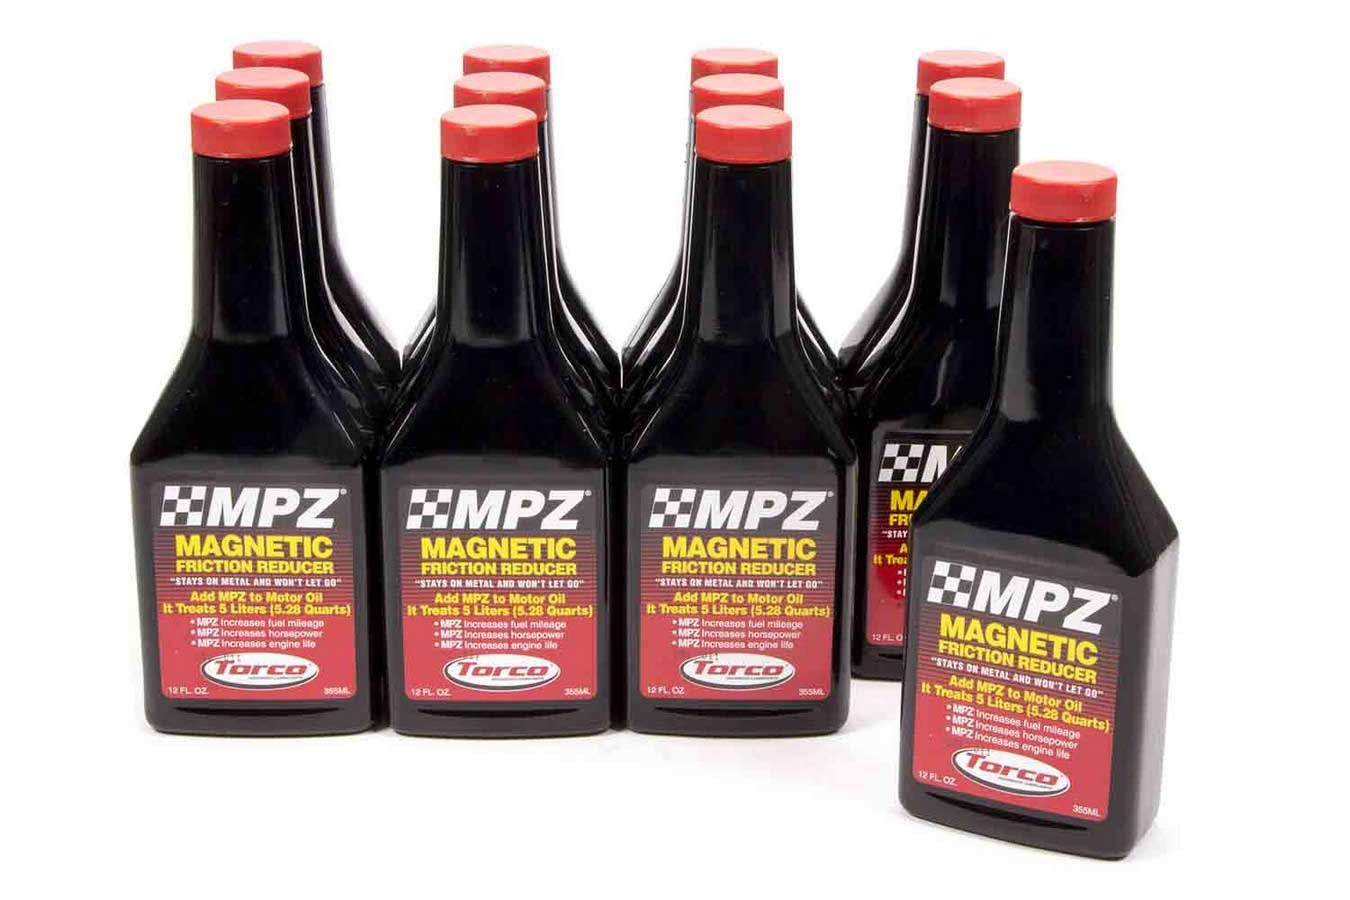 Torco MPZ Magnetic Friction Reducer Case/12-12oz